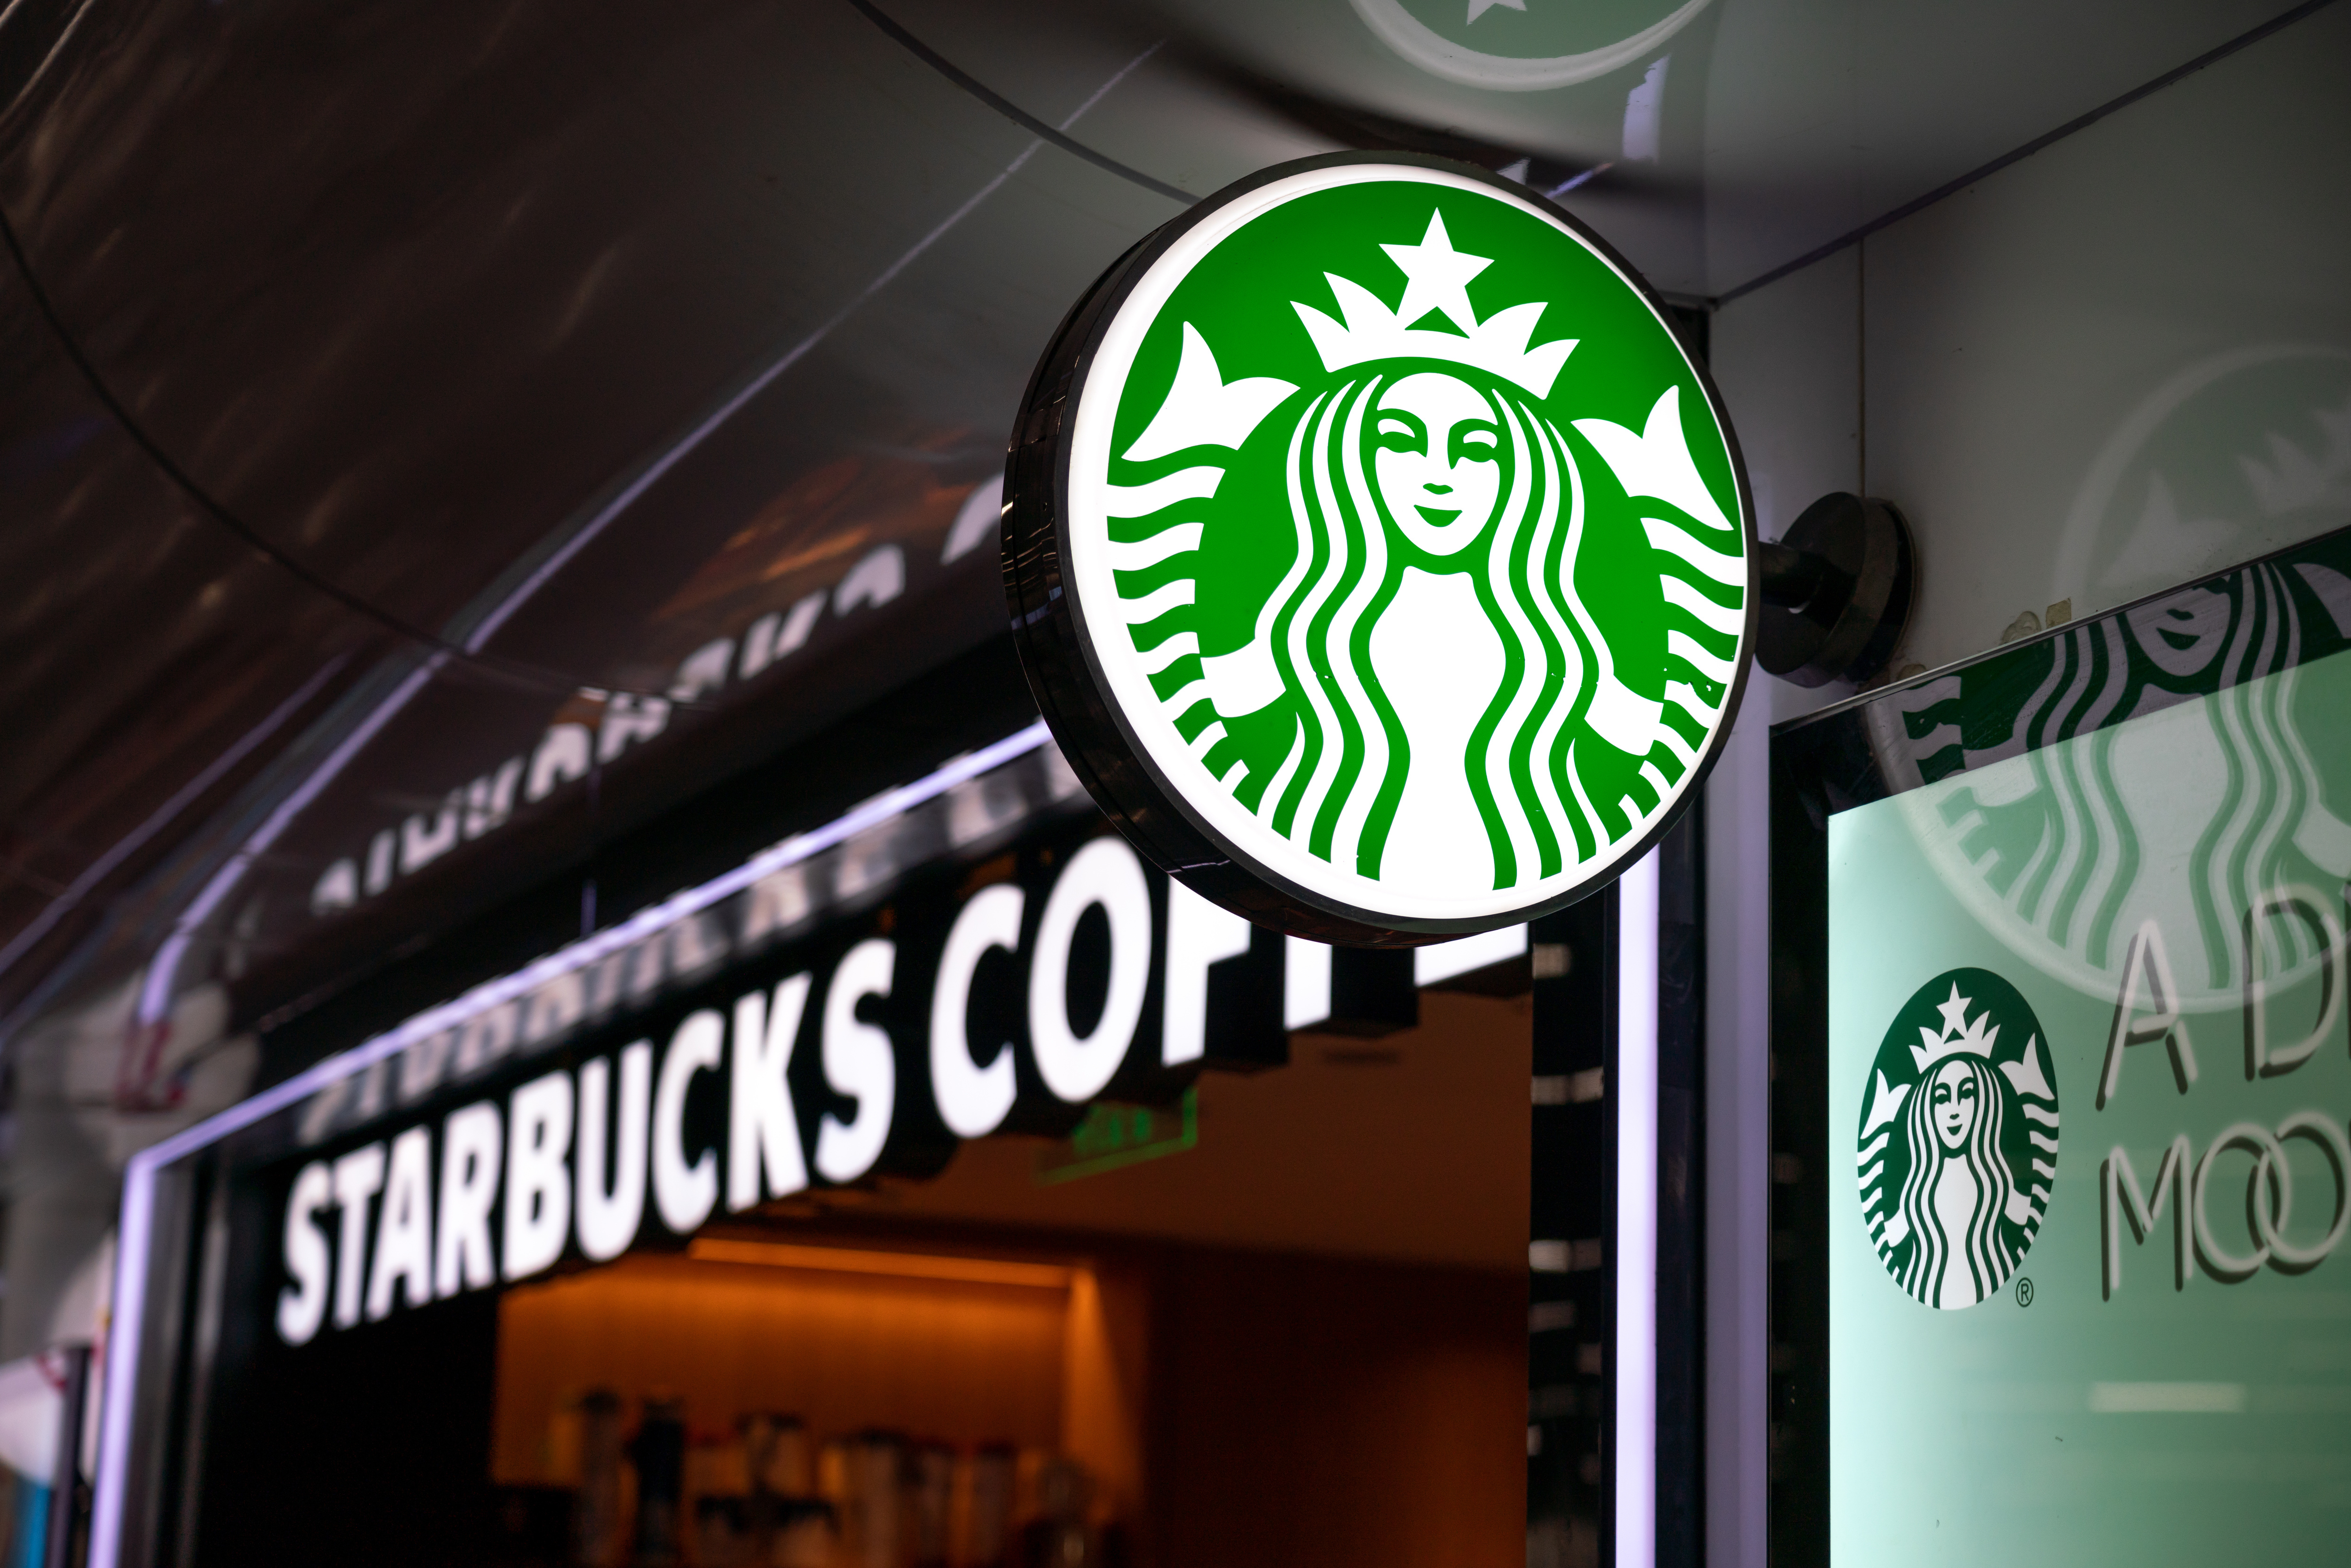 Starbucks Deliver is expected to expand across the nation in early 2020.